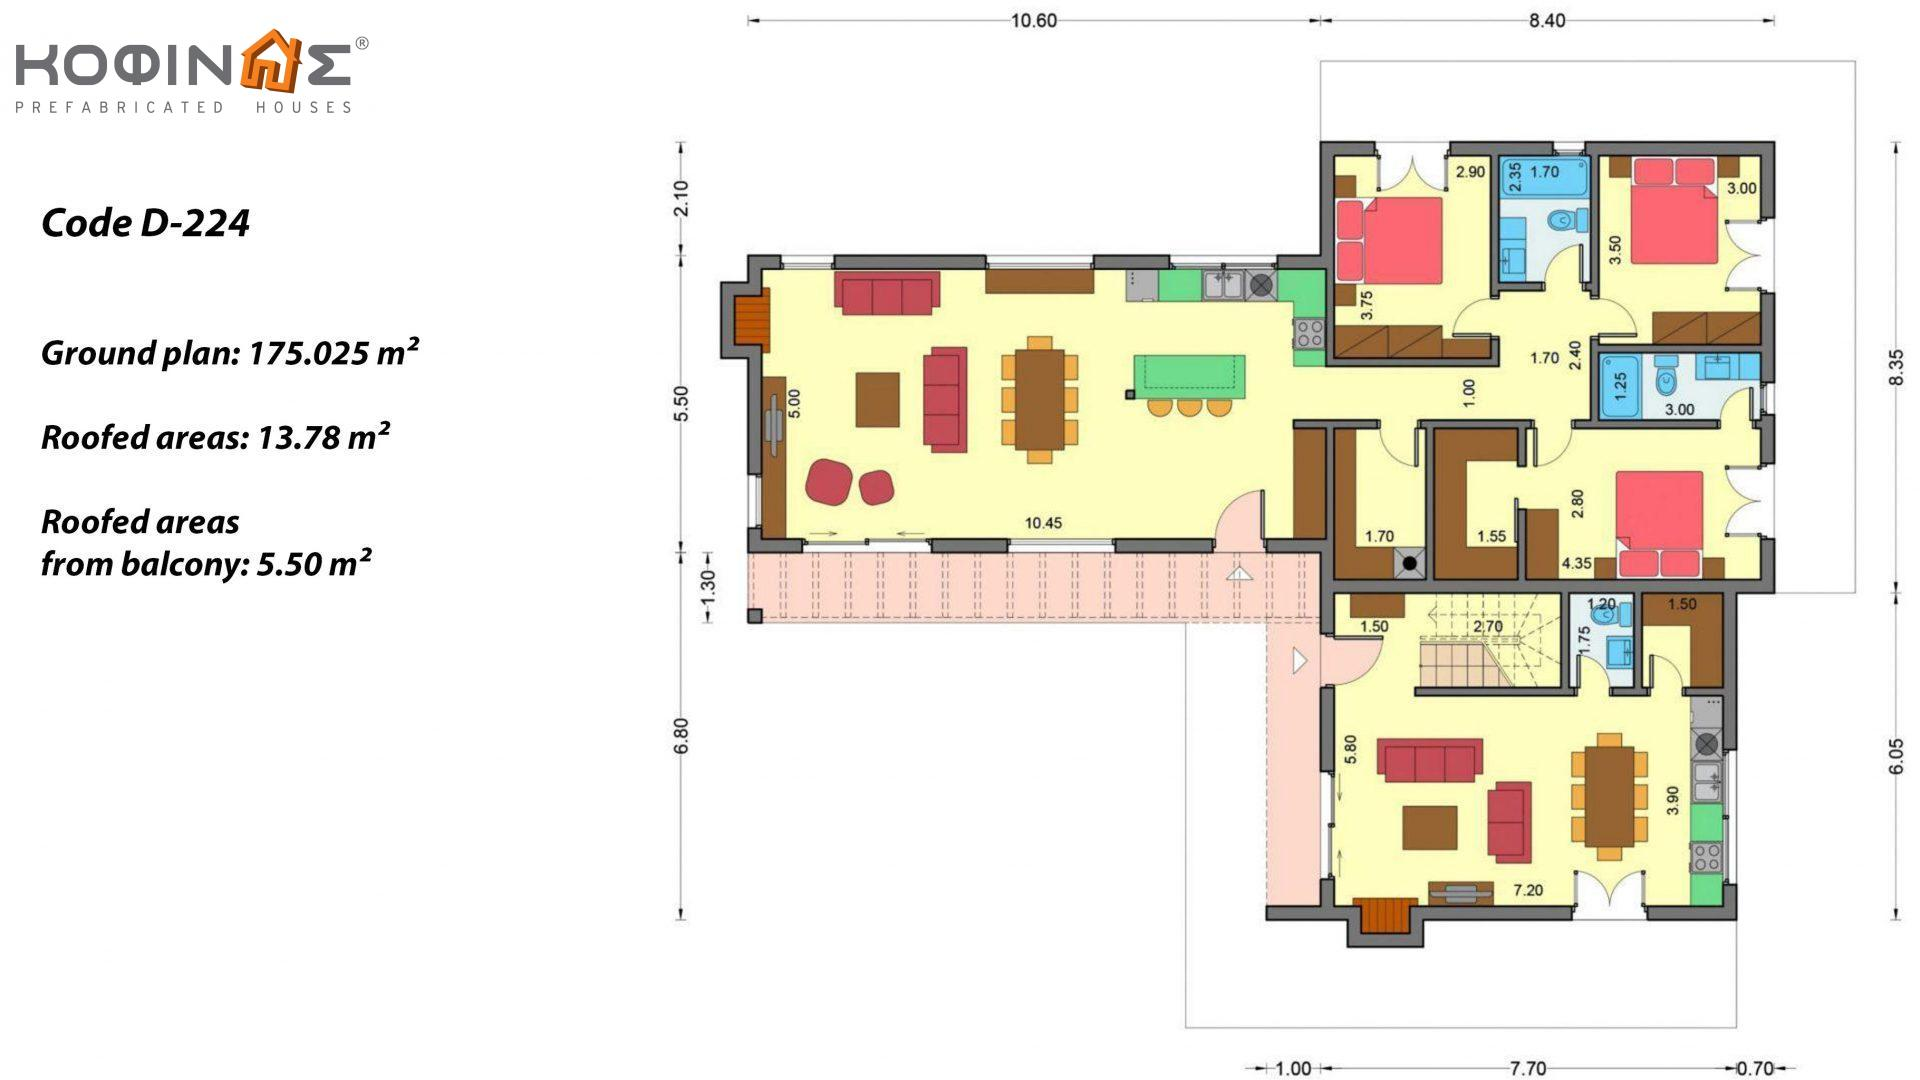 Complex of 2-story houses D-224, total surface of 224,68 m² ,roofed areas 24.88 m²,balconies 75.44 m²